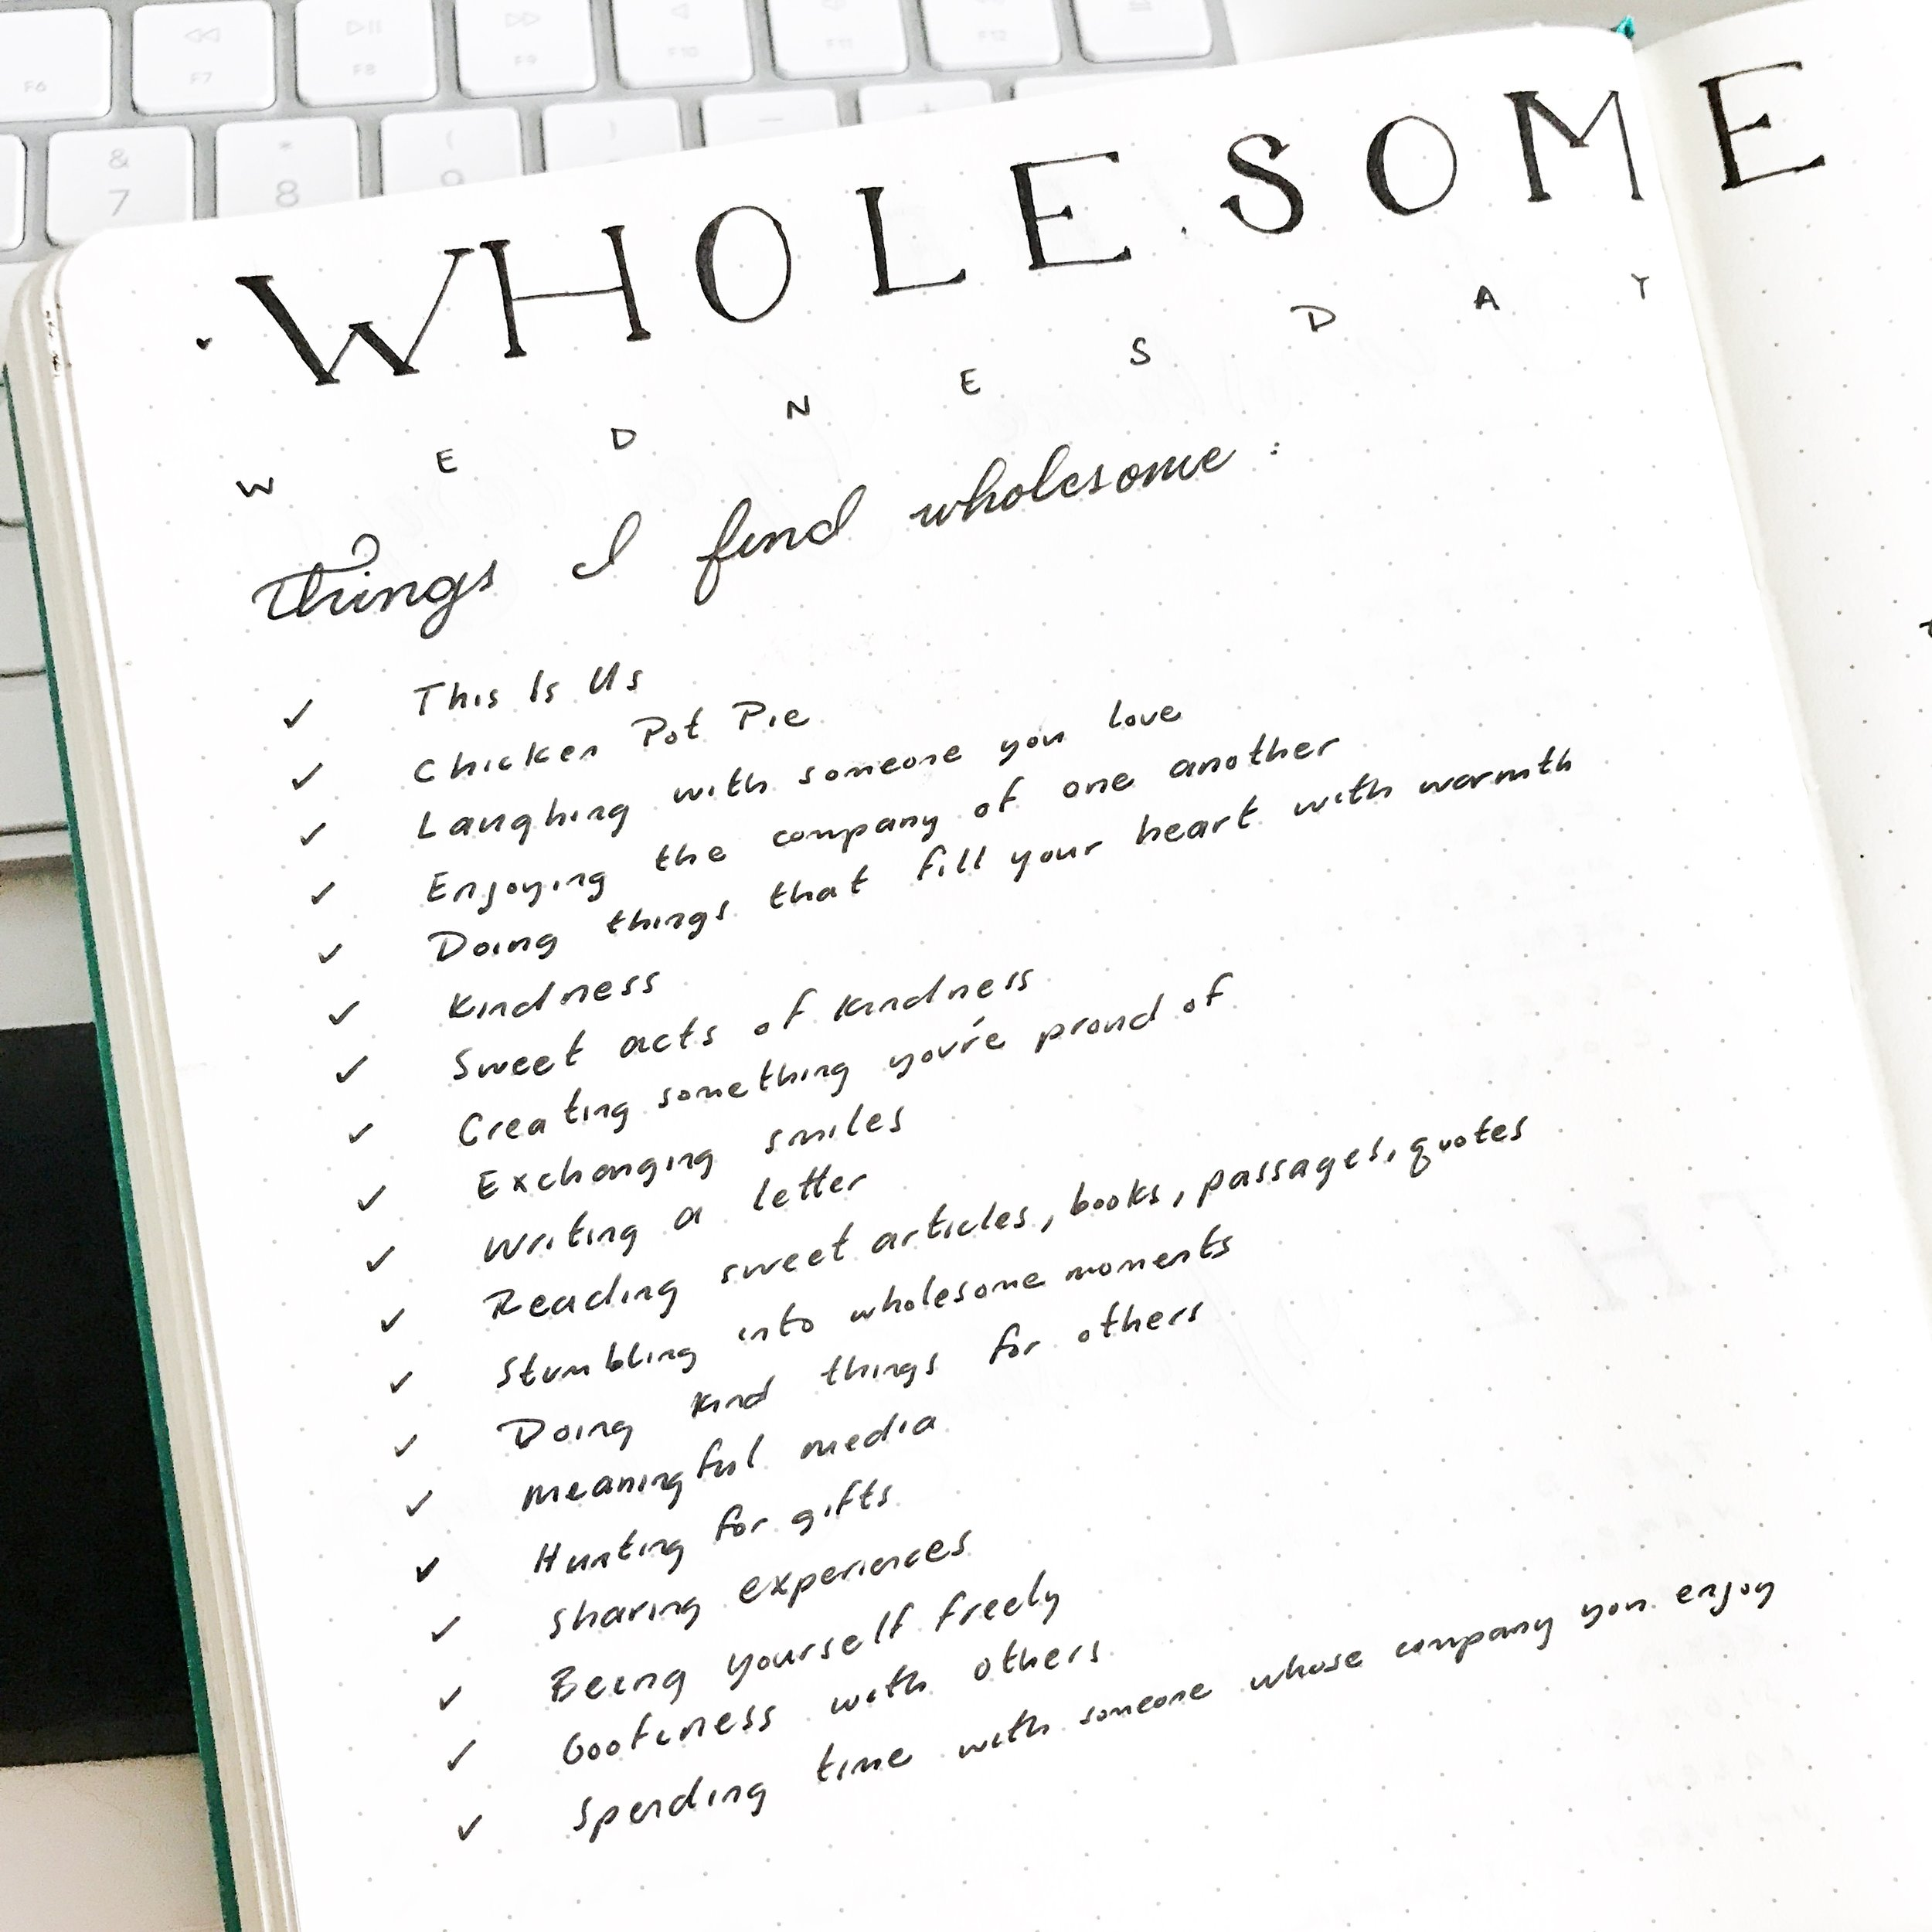 Add a Wholesome Log to Brighten Your Day with your Bullet Journal